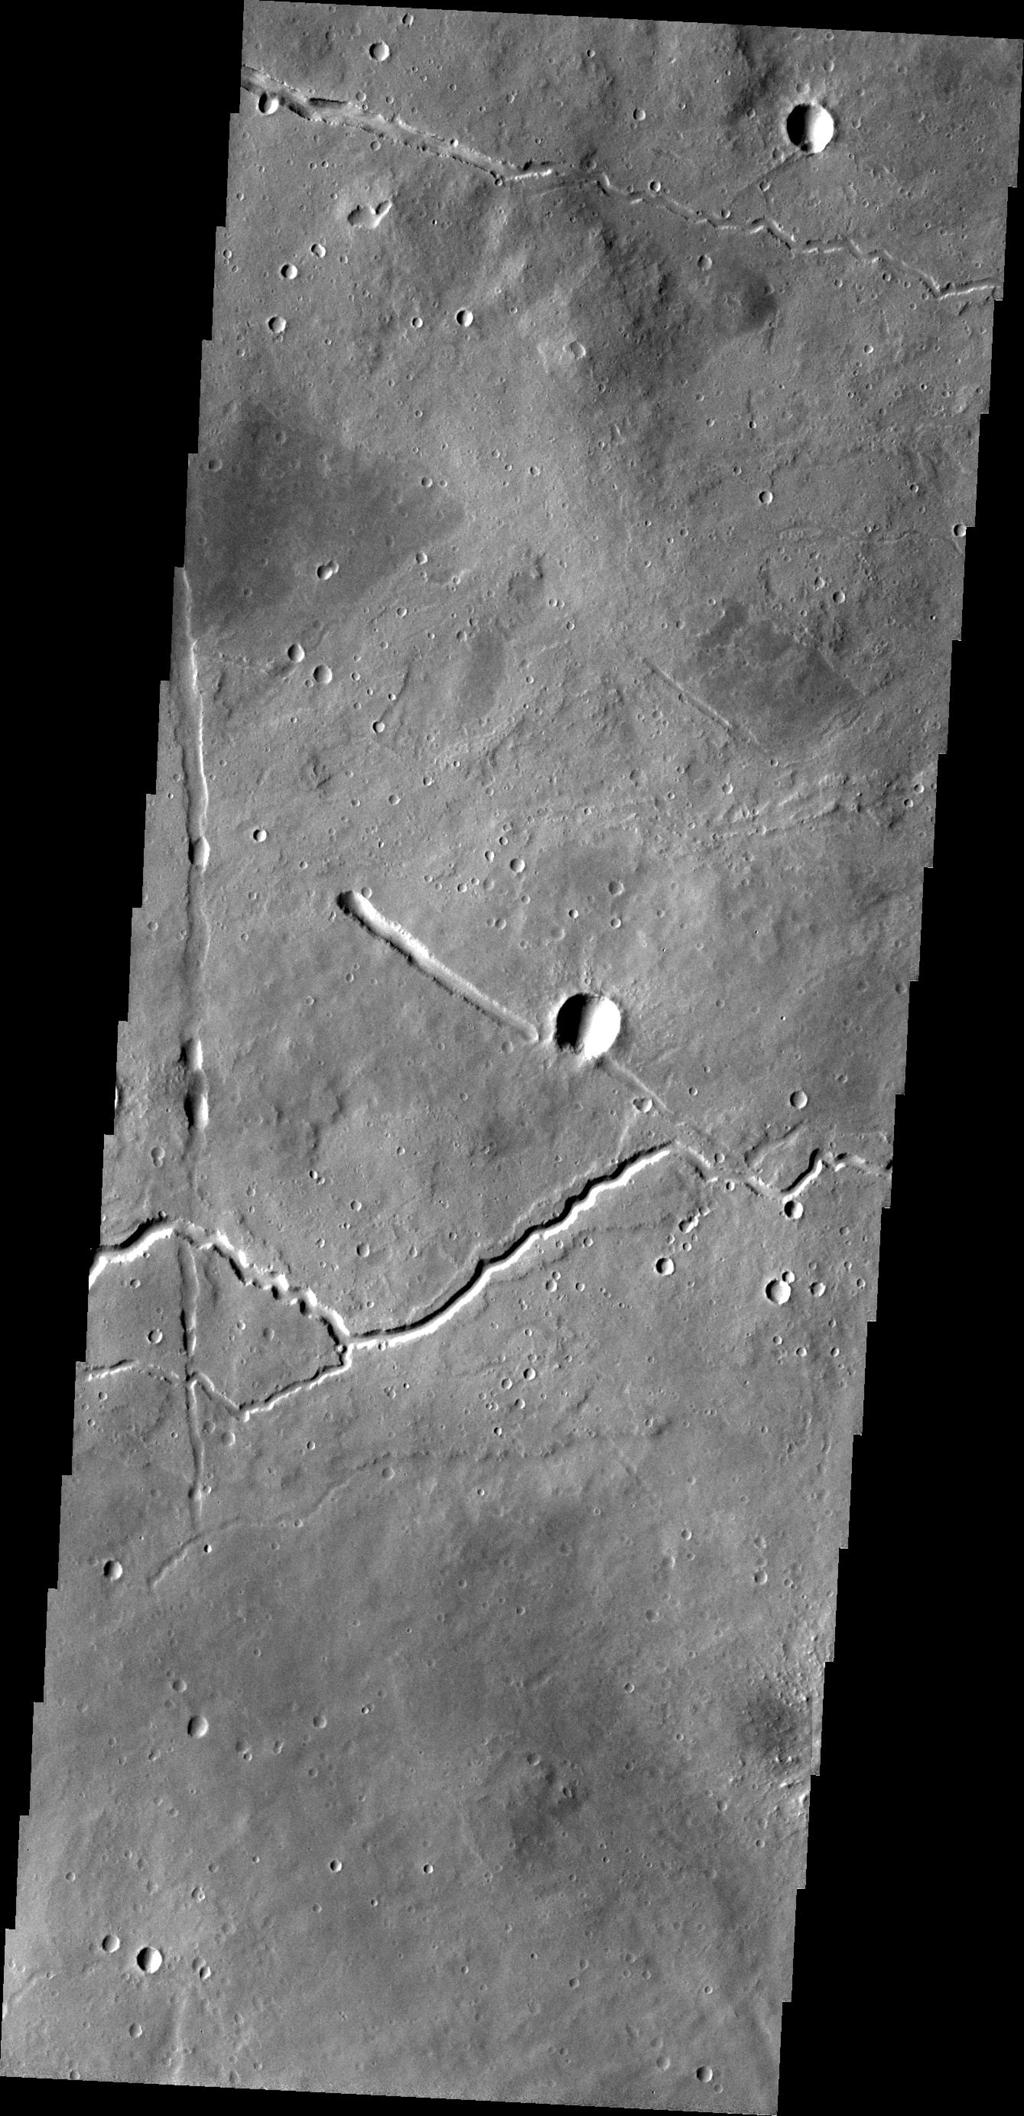 Ituxi Vallis is a lava channel located on the eastern side of Elysium Mons in this image captured by NASA's 2001 Mars Odyssey.